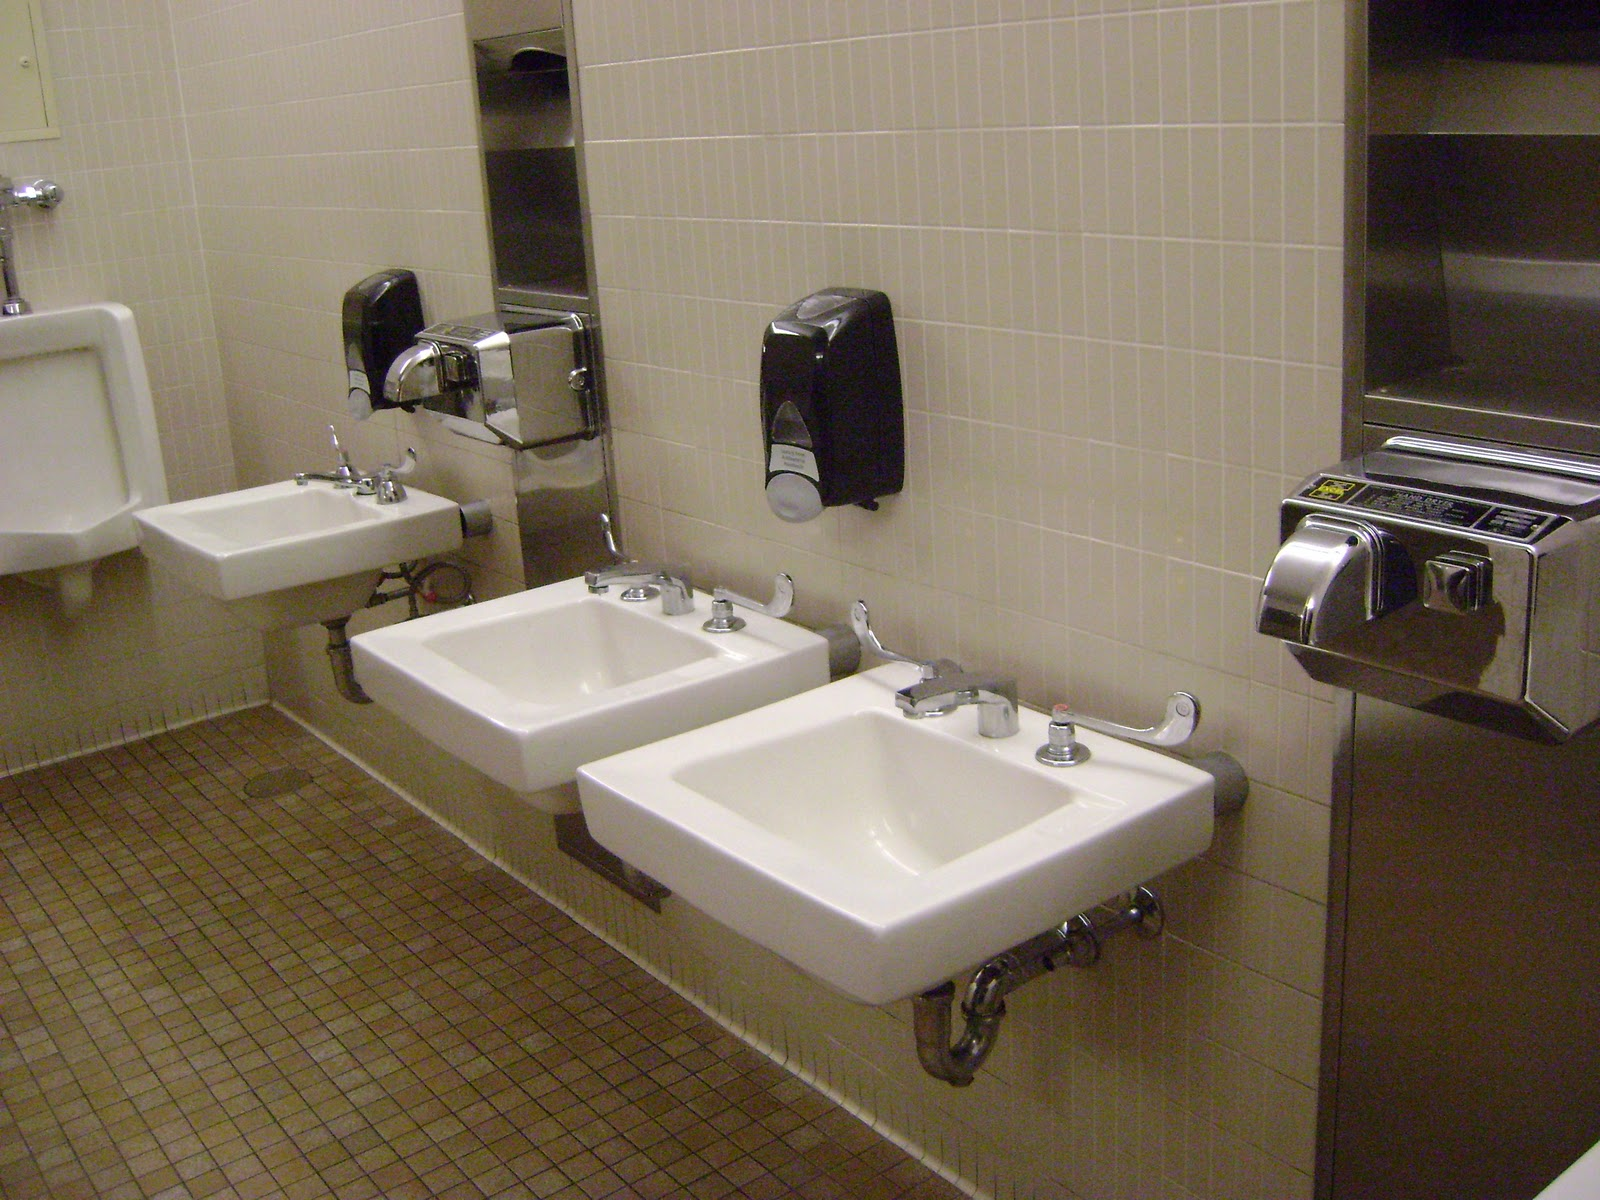 Mount Wachusett Community College By Using This Bathroom You Ve Actually Just Matriculated